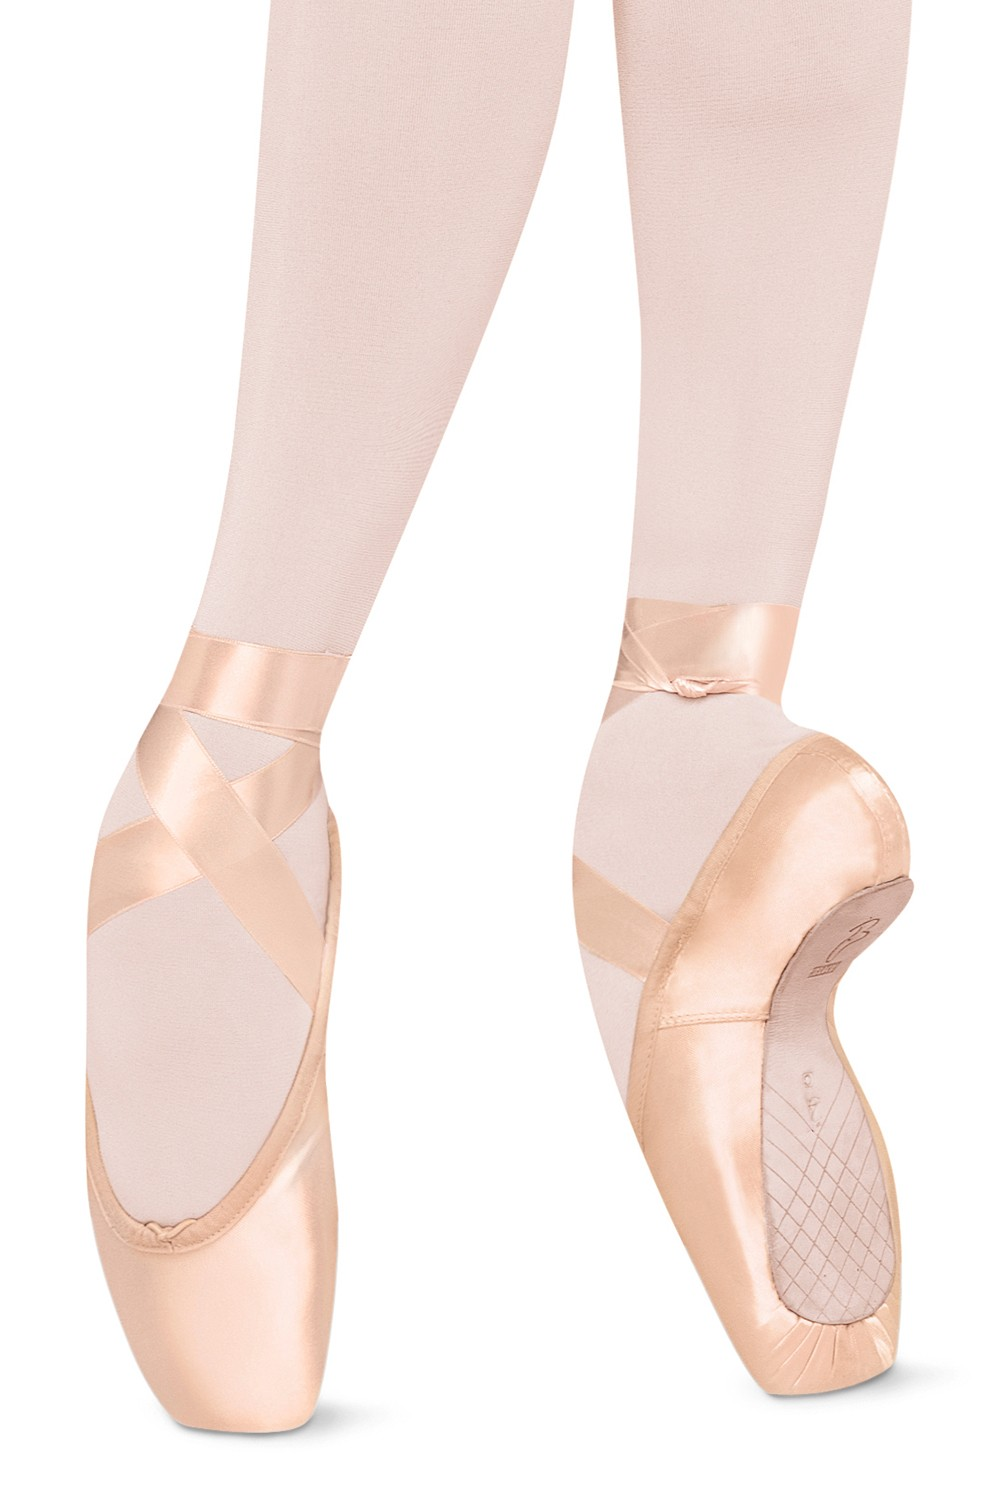 Sonata - Girls Pointe Shoes